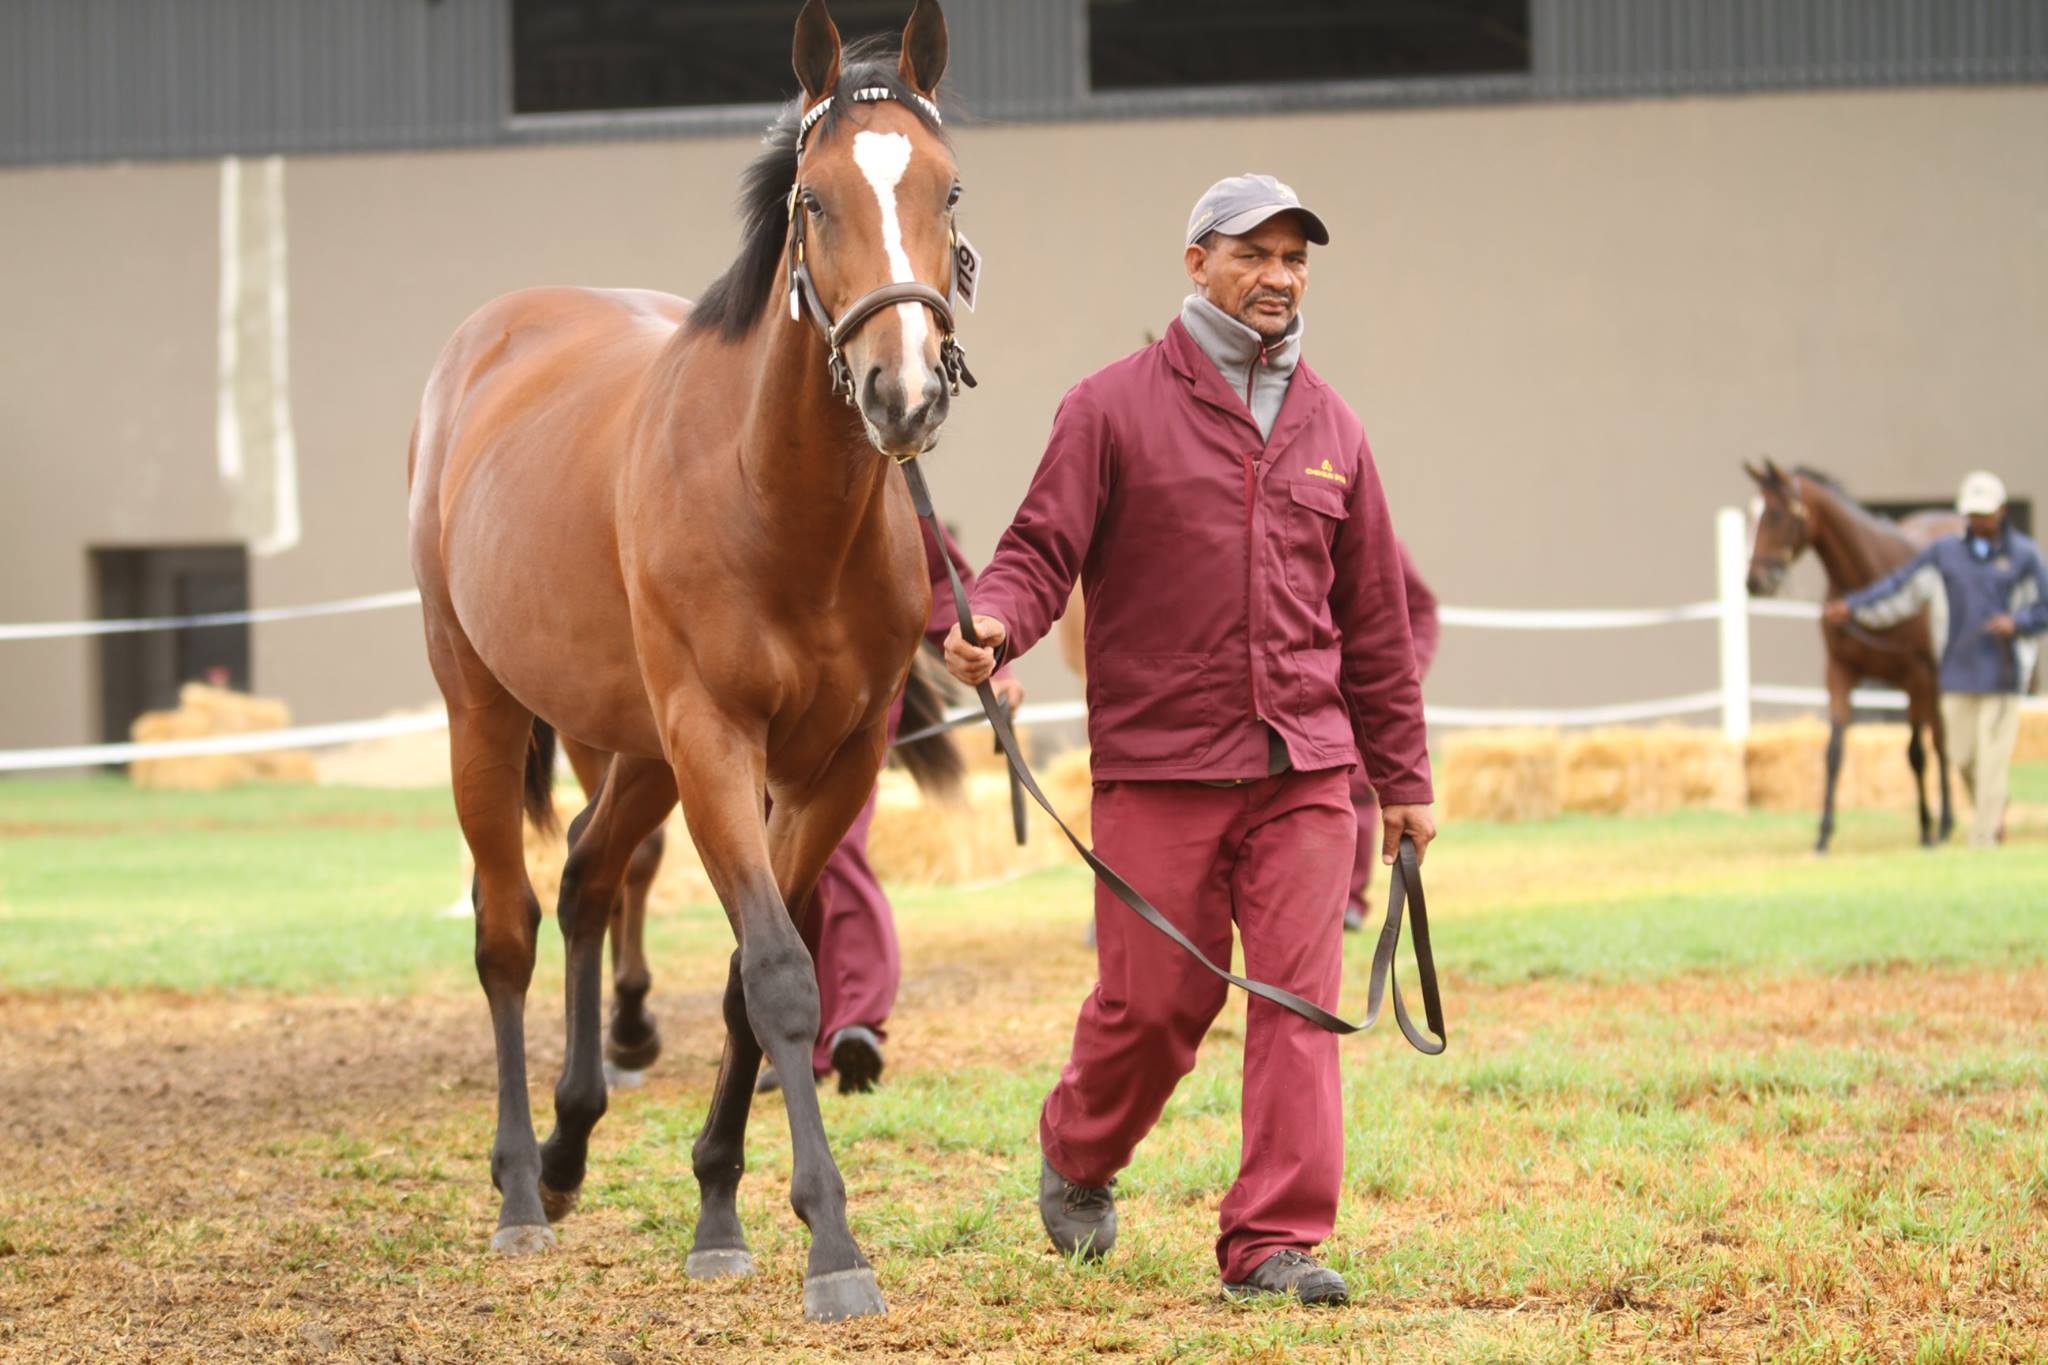 Representing at the '17 BSA Cape Yearling Sale, Mistico